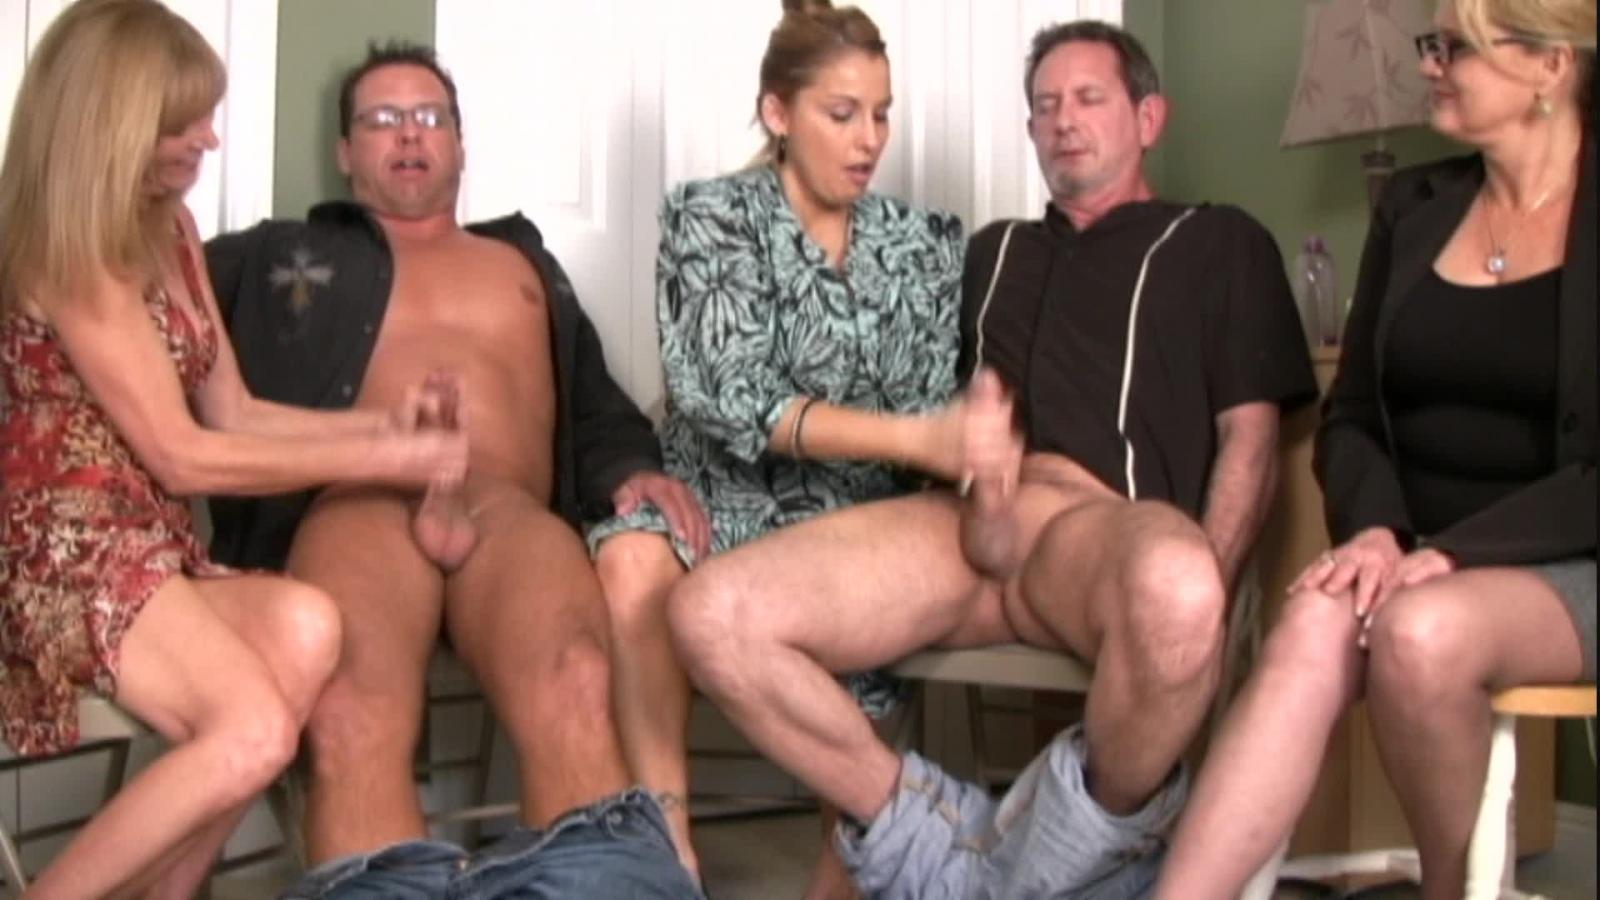 cfnm-free-clips-jerk-off-naked-girls-putting-on-tampons